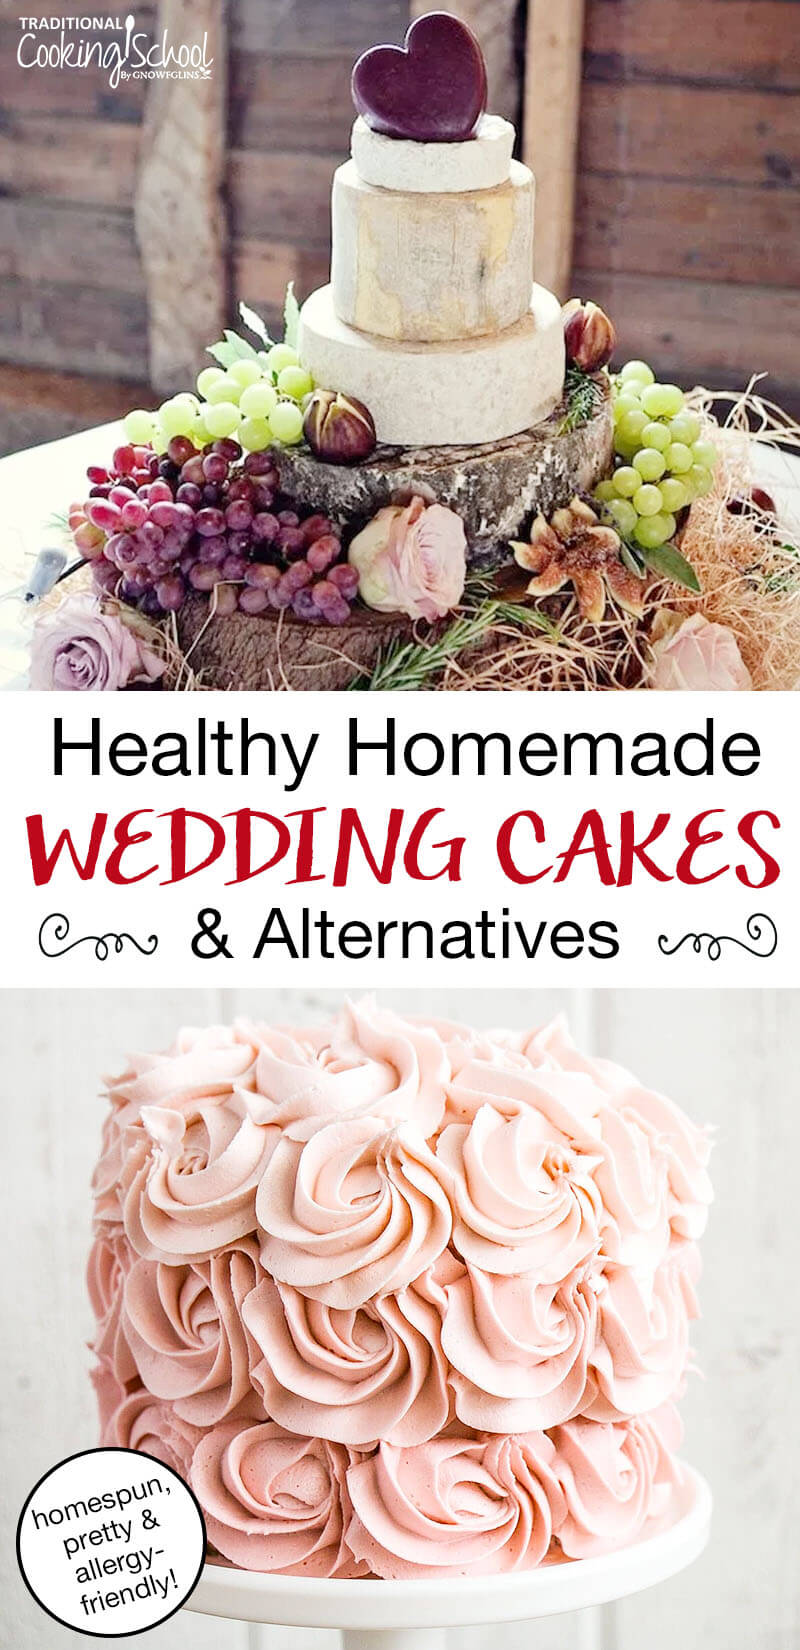 """photo collage of wedding cakes, including a layered """"cake"""" of cheese wheels, and a cake decorated with delicate pink frosting piped to look like flowers, with text overlay: """"Healthy Homemade Wedding Cakes & Alternatives (homespun, pretty & allergy-friendly!)"""""""